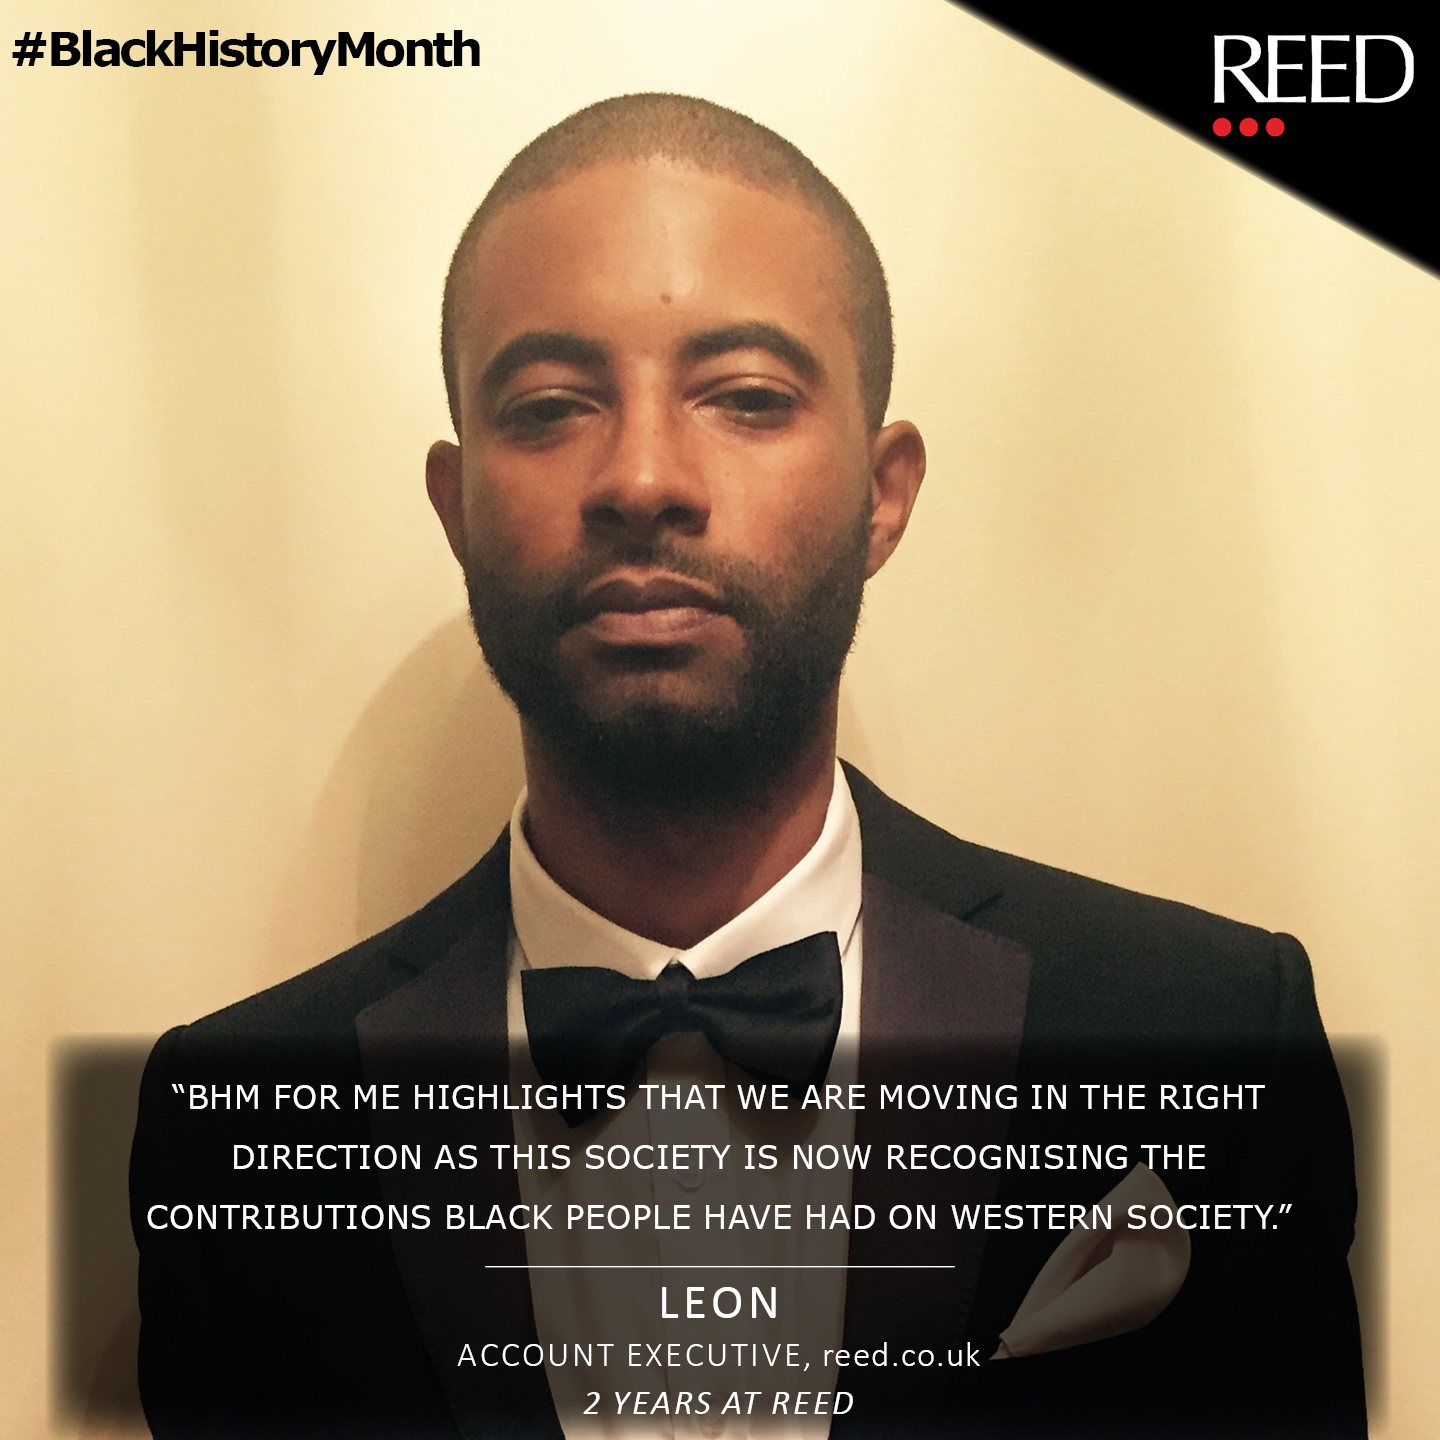 what black history month means to me - Leon Wright - Account Executive at reed.co.uk